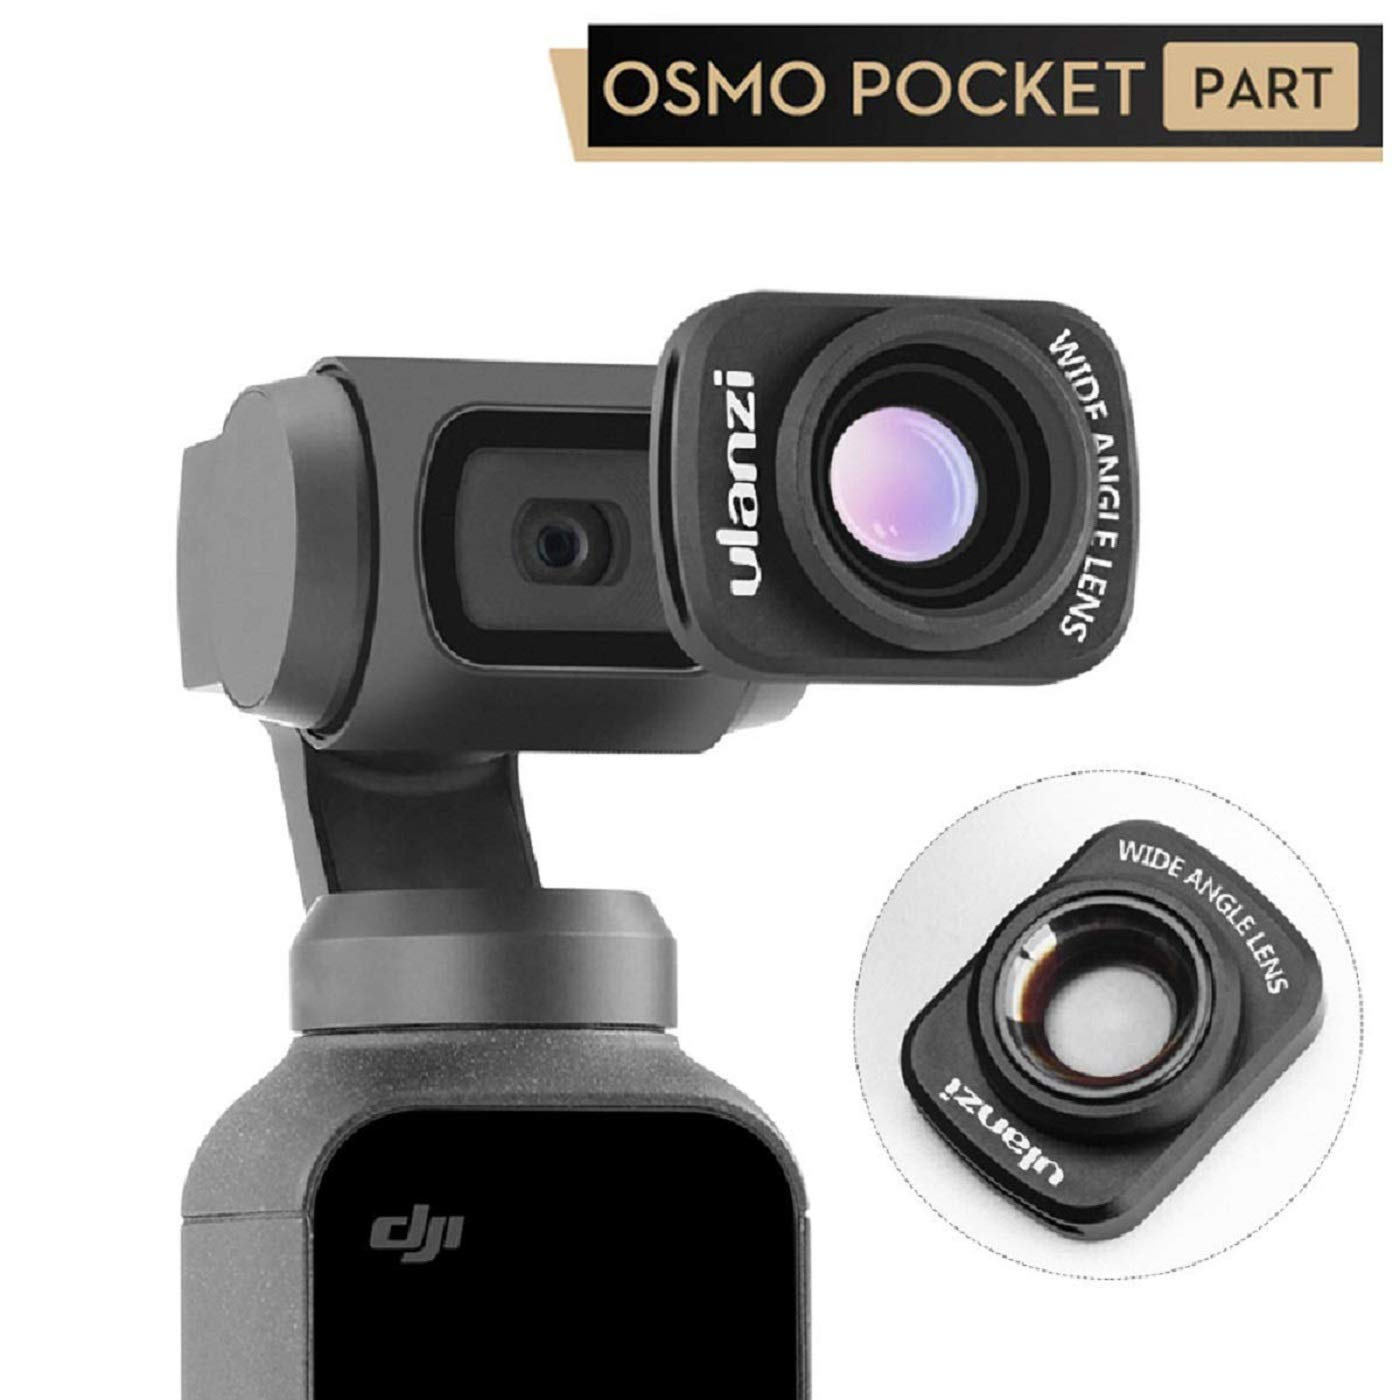 Wide Angle Lens for DJI Osmo Pocket - ULANZI OP-5 Professional 0.65 X Wide-Angle HD Magnetic Structure Design Camera Lenses, Osmo Pocket Gimbal Accessories